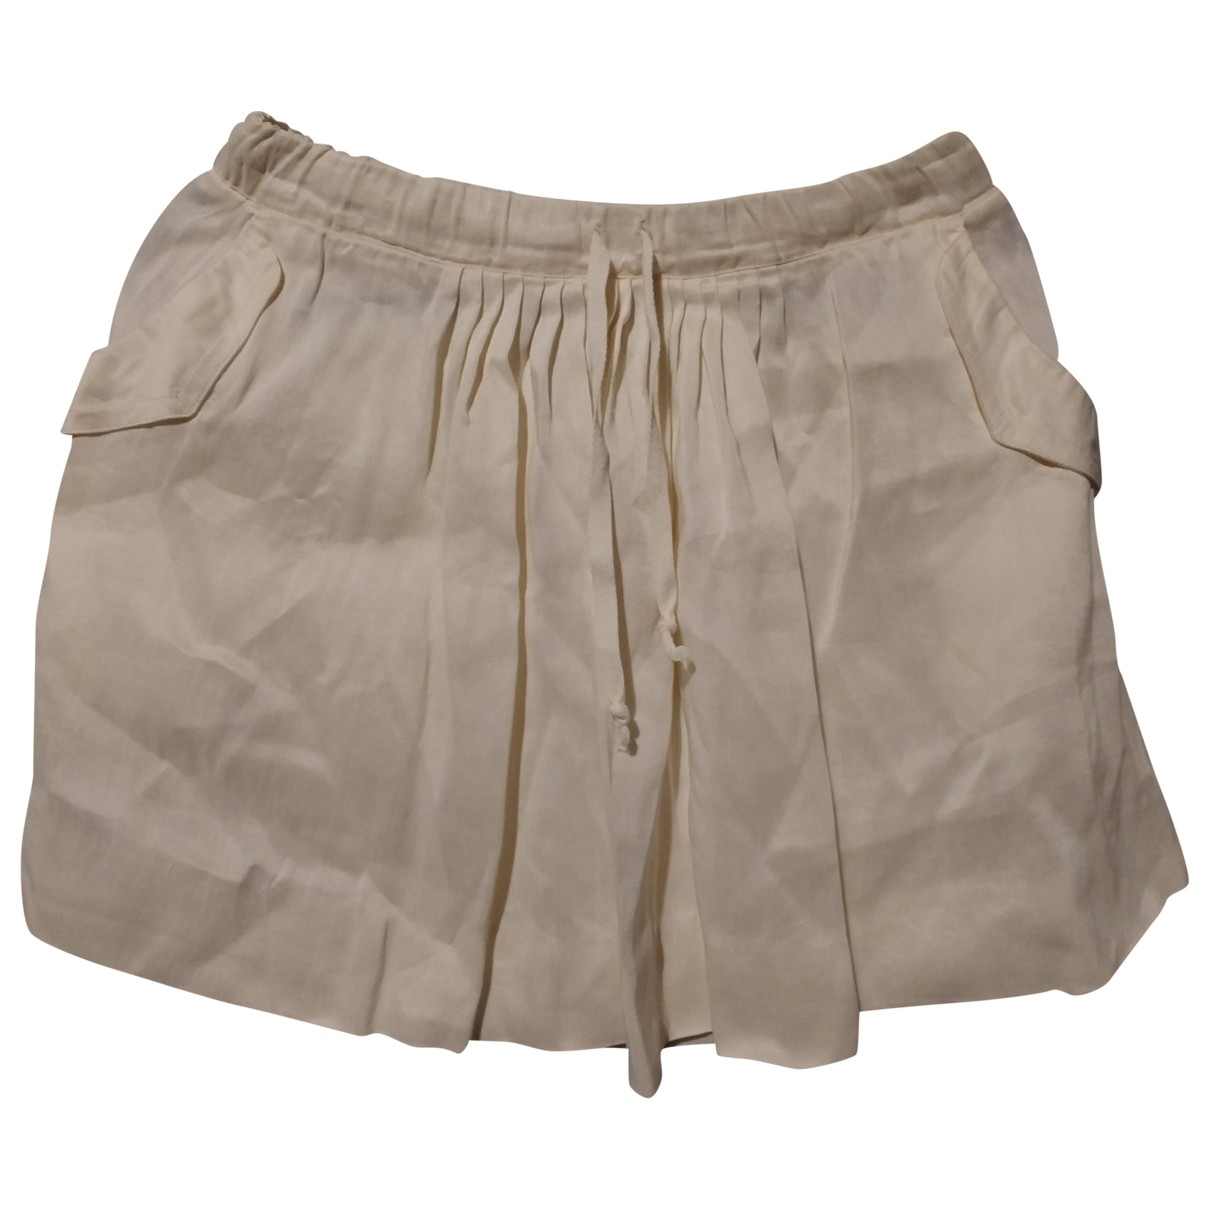 Sandro \N Beige Linen skirt for Women 1 0-5